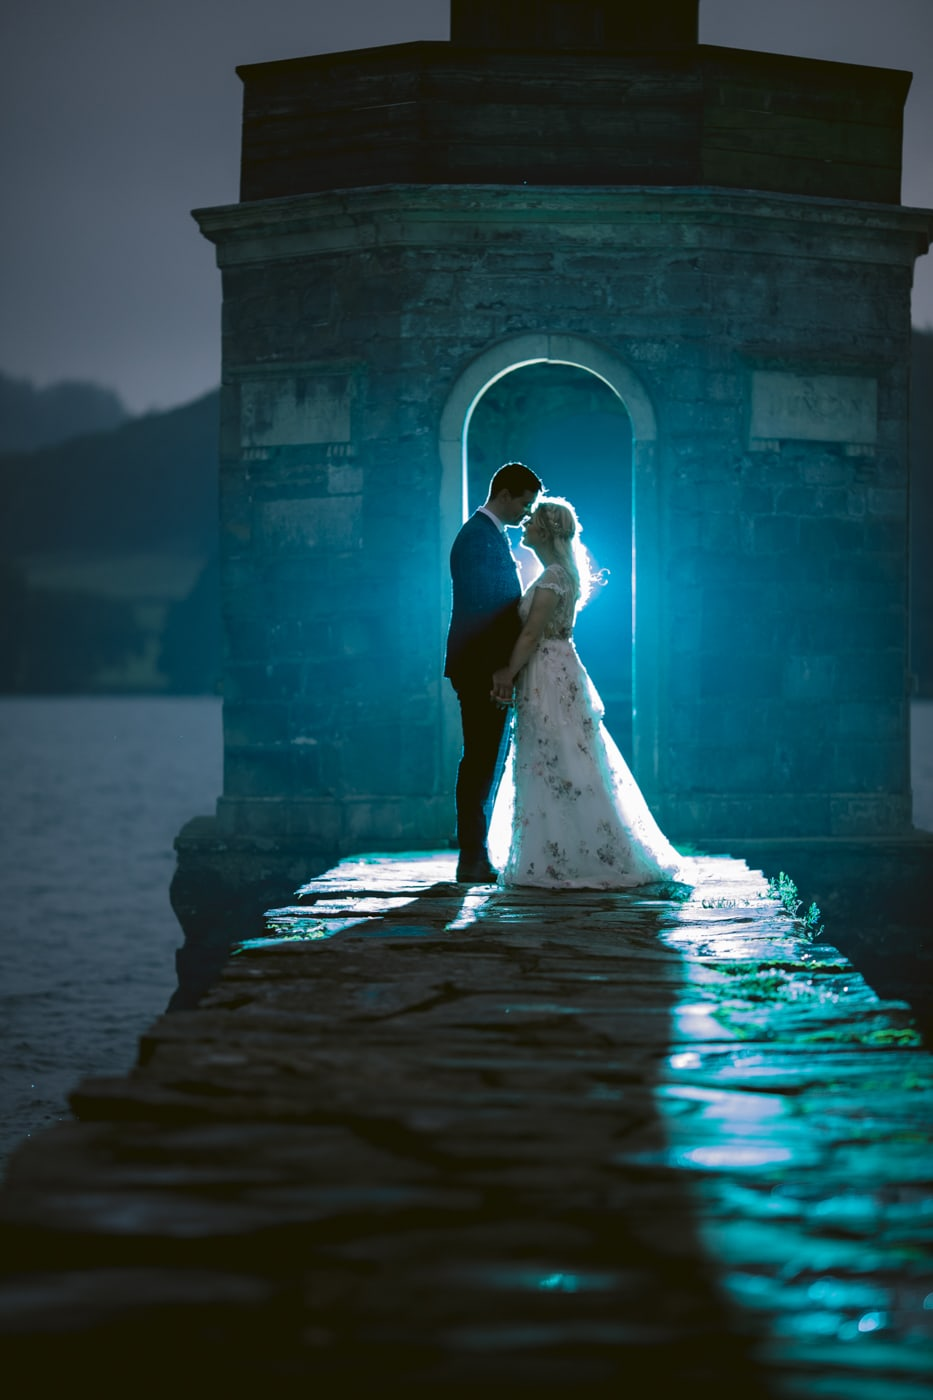 Bride and Groom Bathed in Light on Lakeside at Storrs Hall Wedding